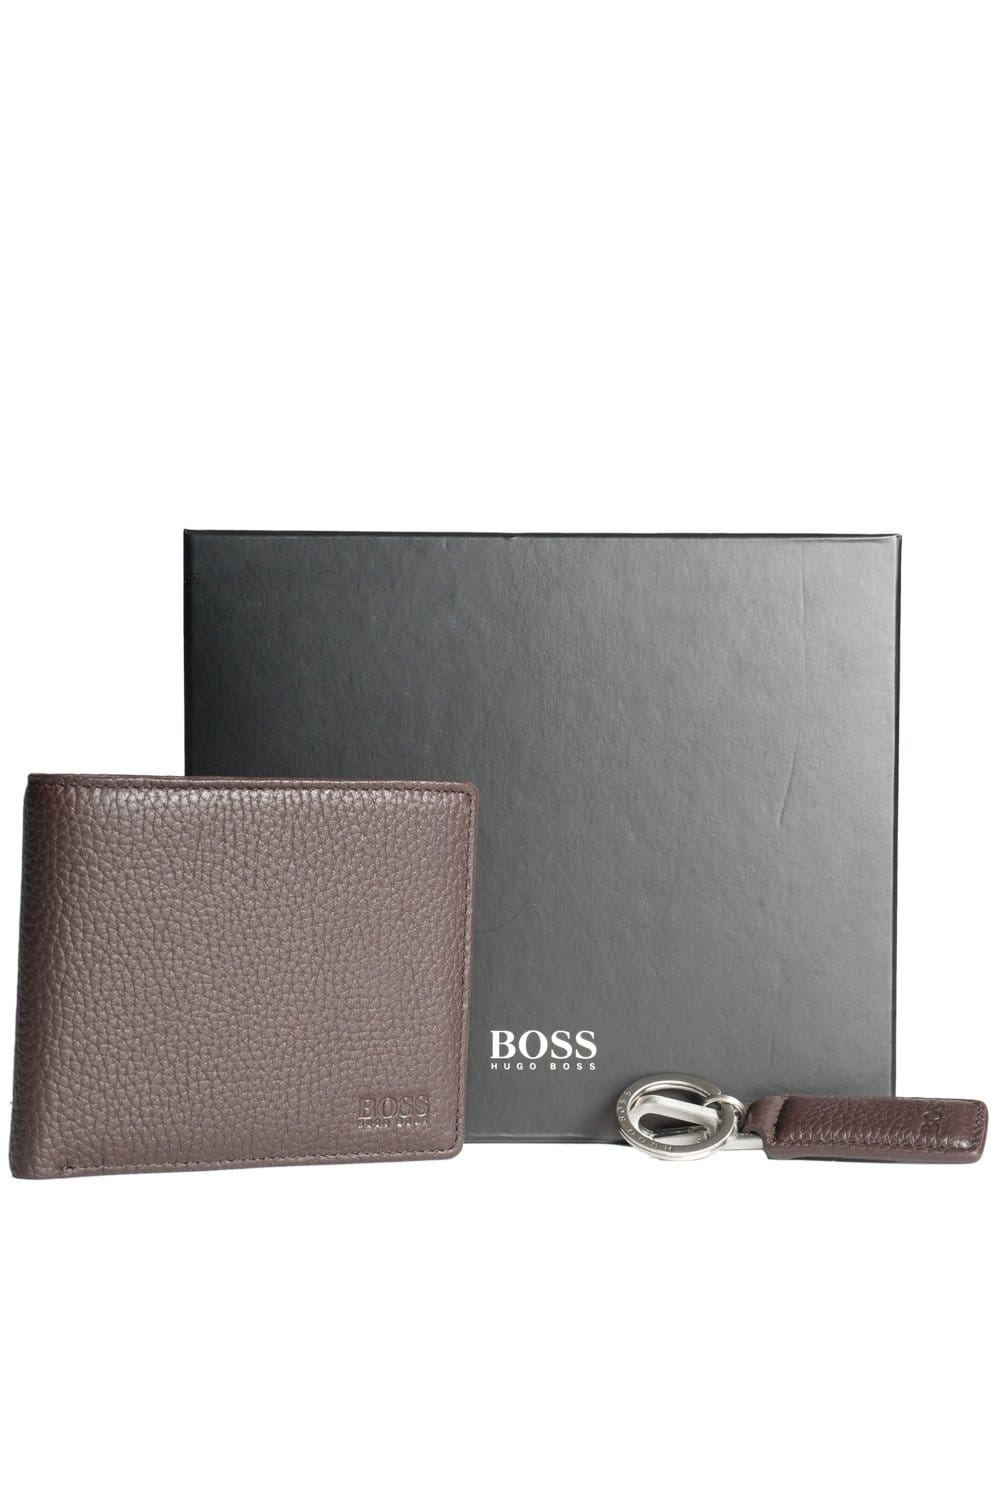 HUGO BOSS BLACK 5 Card Holder and Coin Purse Leather Wallet and ...